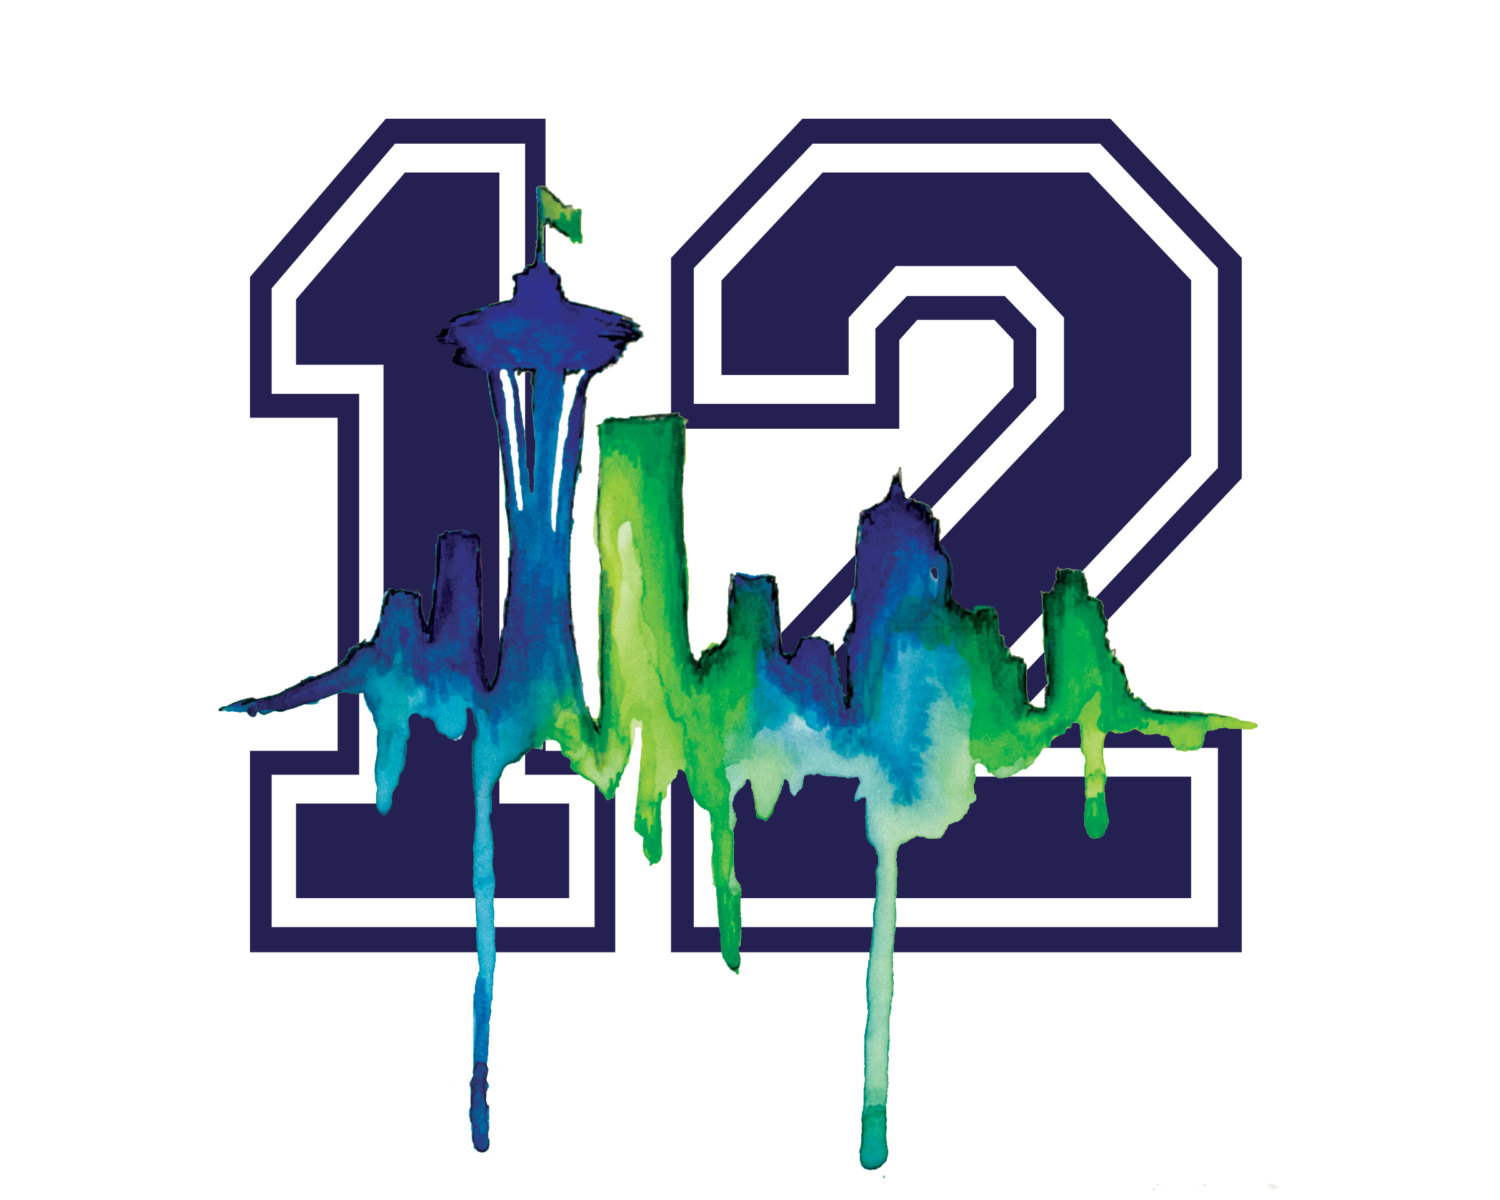 12th Man, Seahawks And Seattle .-12th man, Seahawks and Seattle .-0